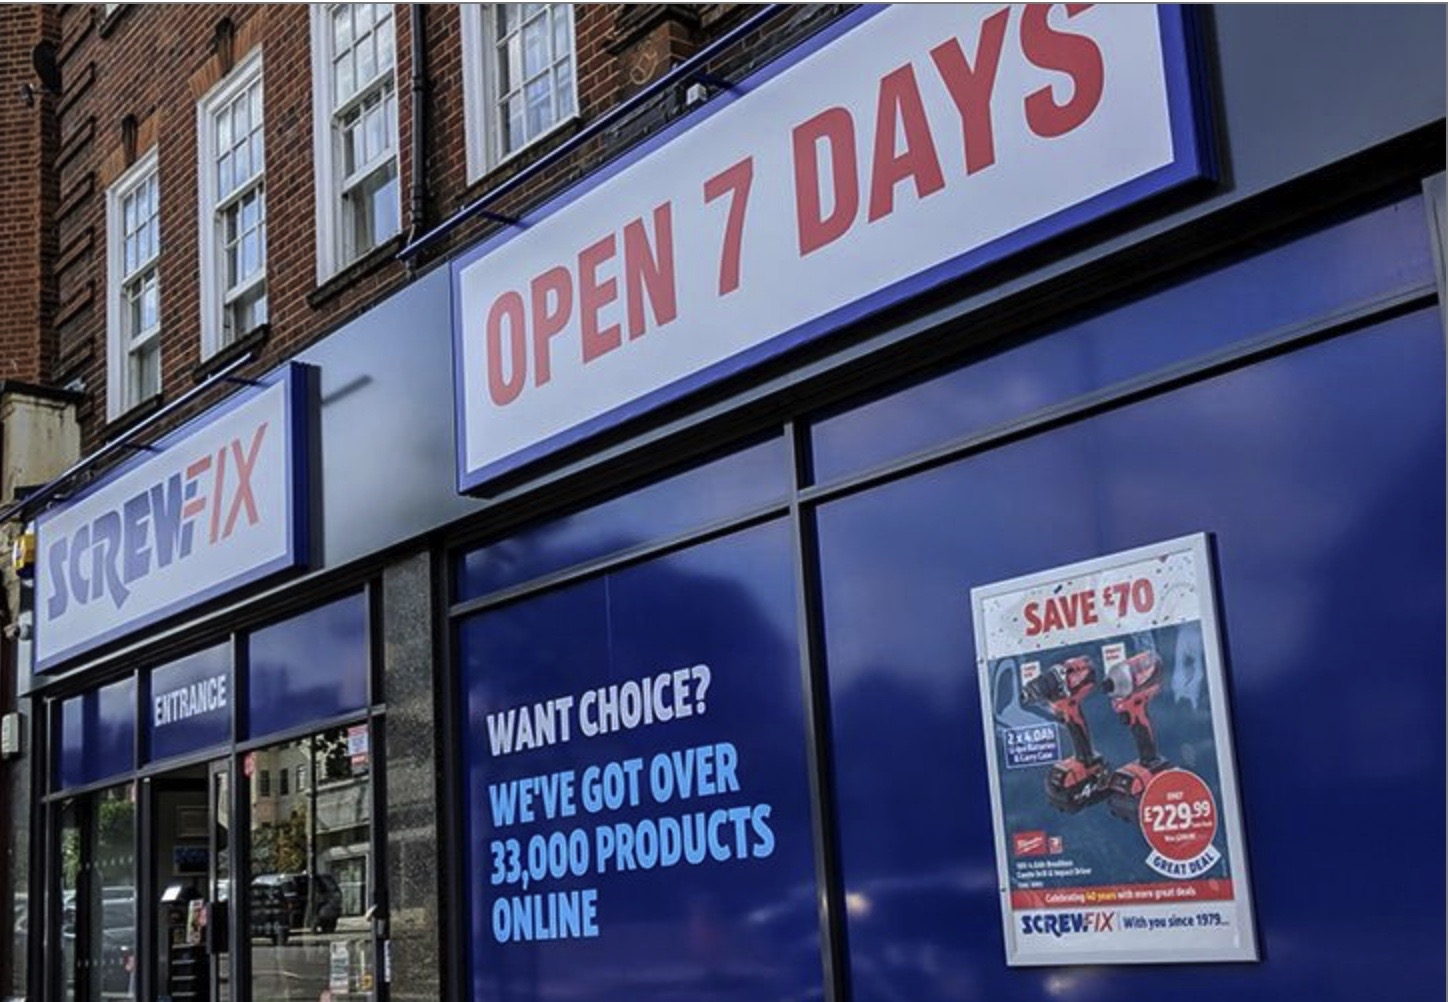 Screwfix opens seven stores in eight weeks